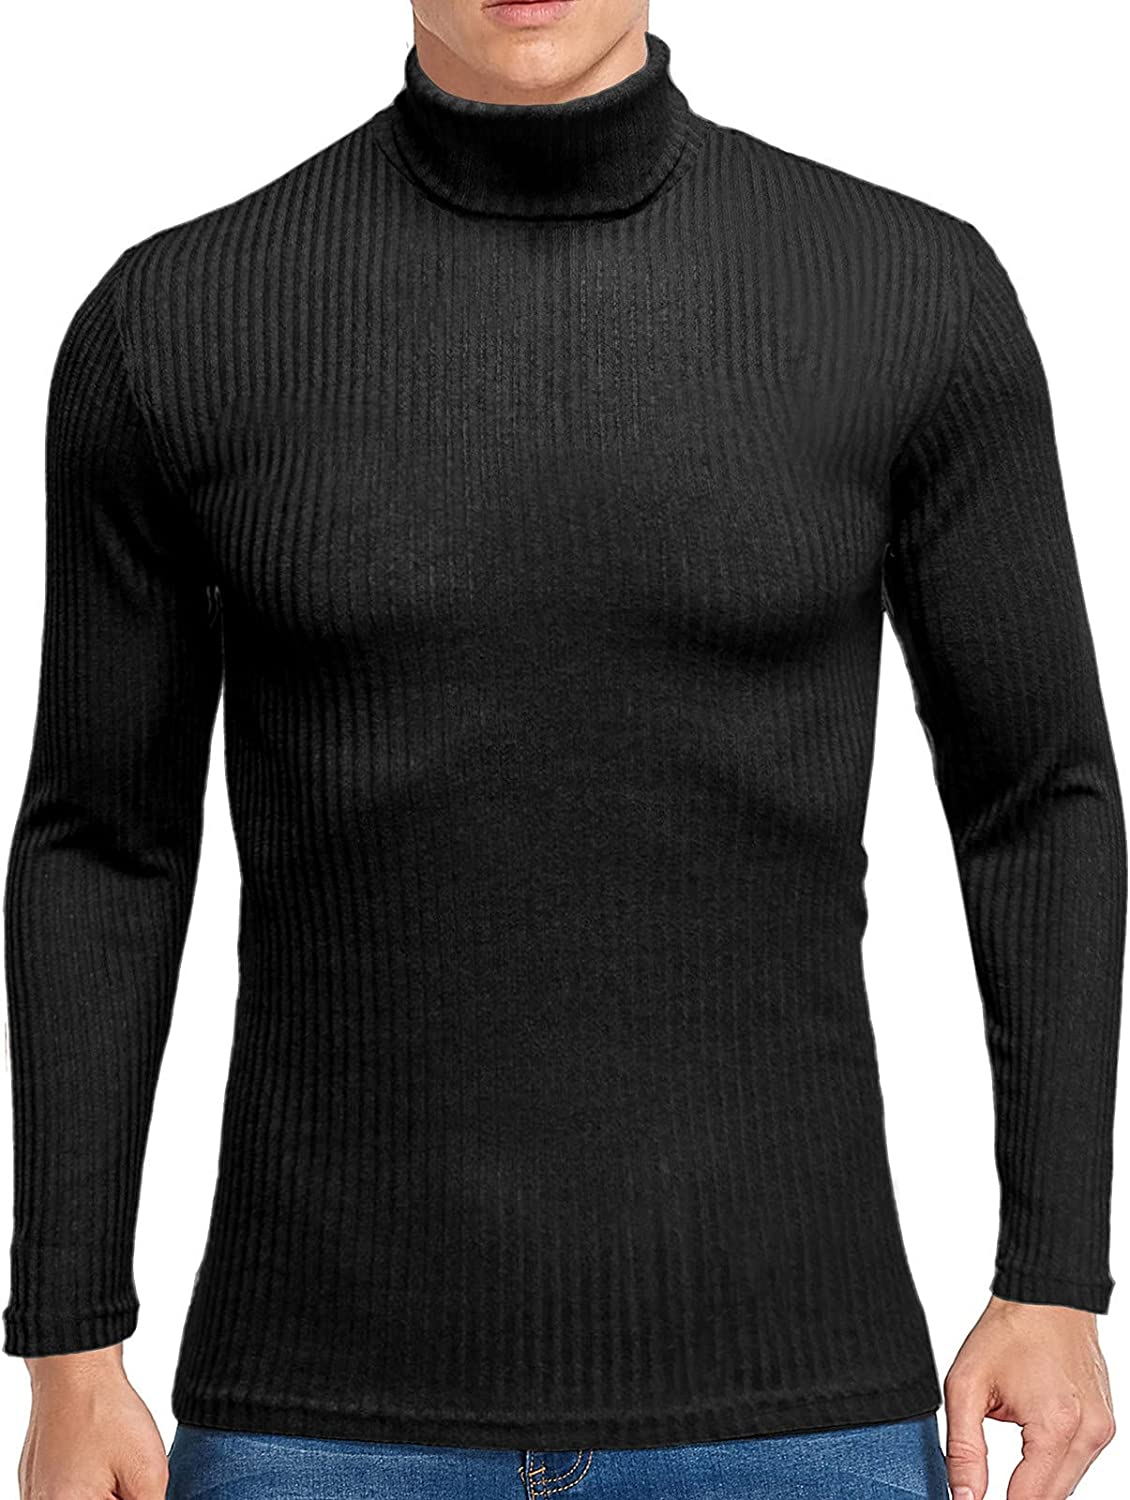 Men's Turtleneck Ribbed Pullover Basic Thermal Sweater Casual Long Sleeve Slim Fit SOFE Knitted Pullover Tops